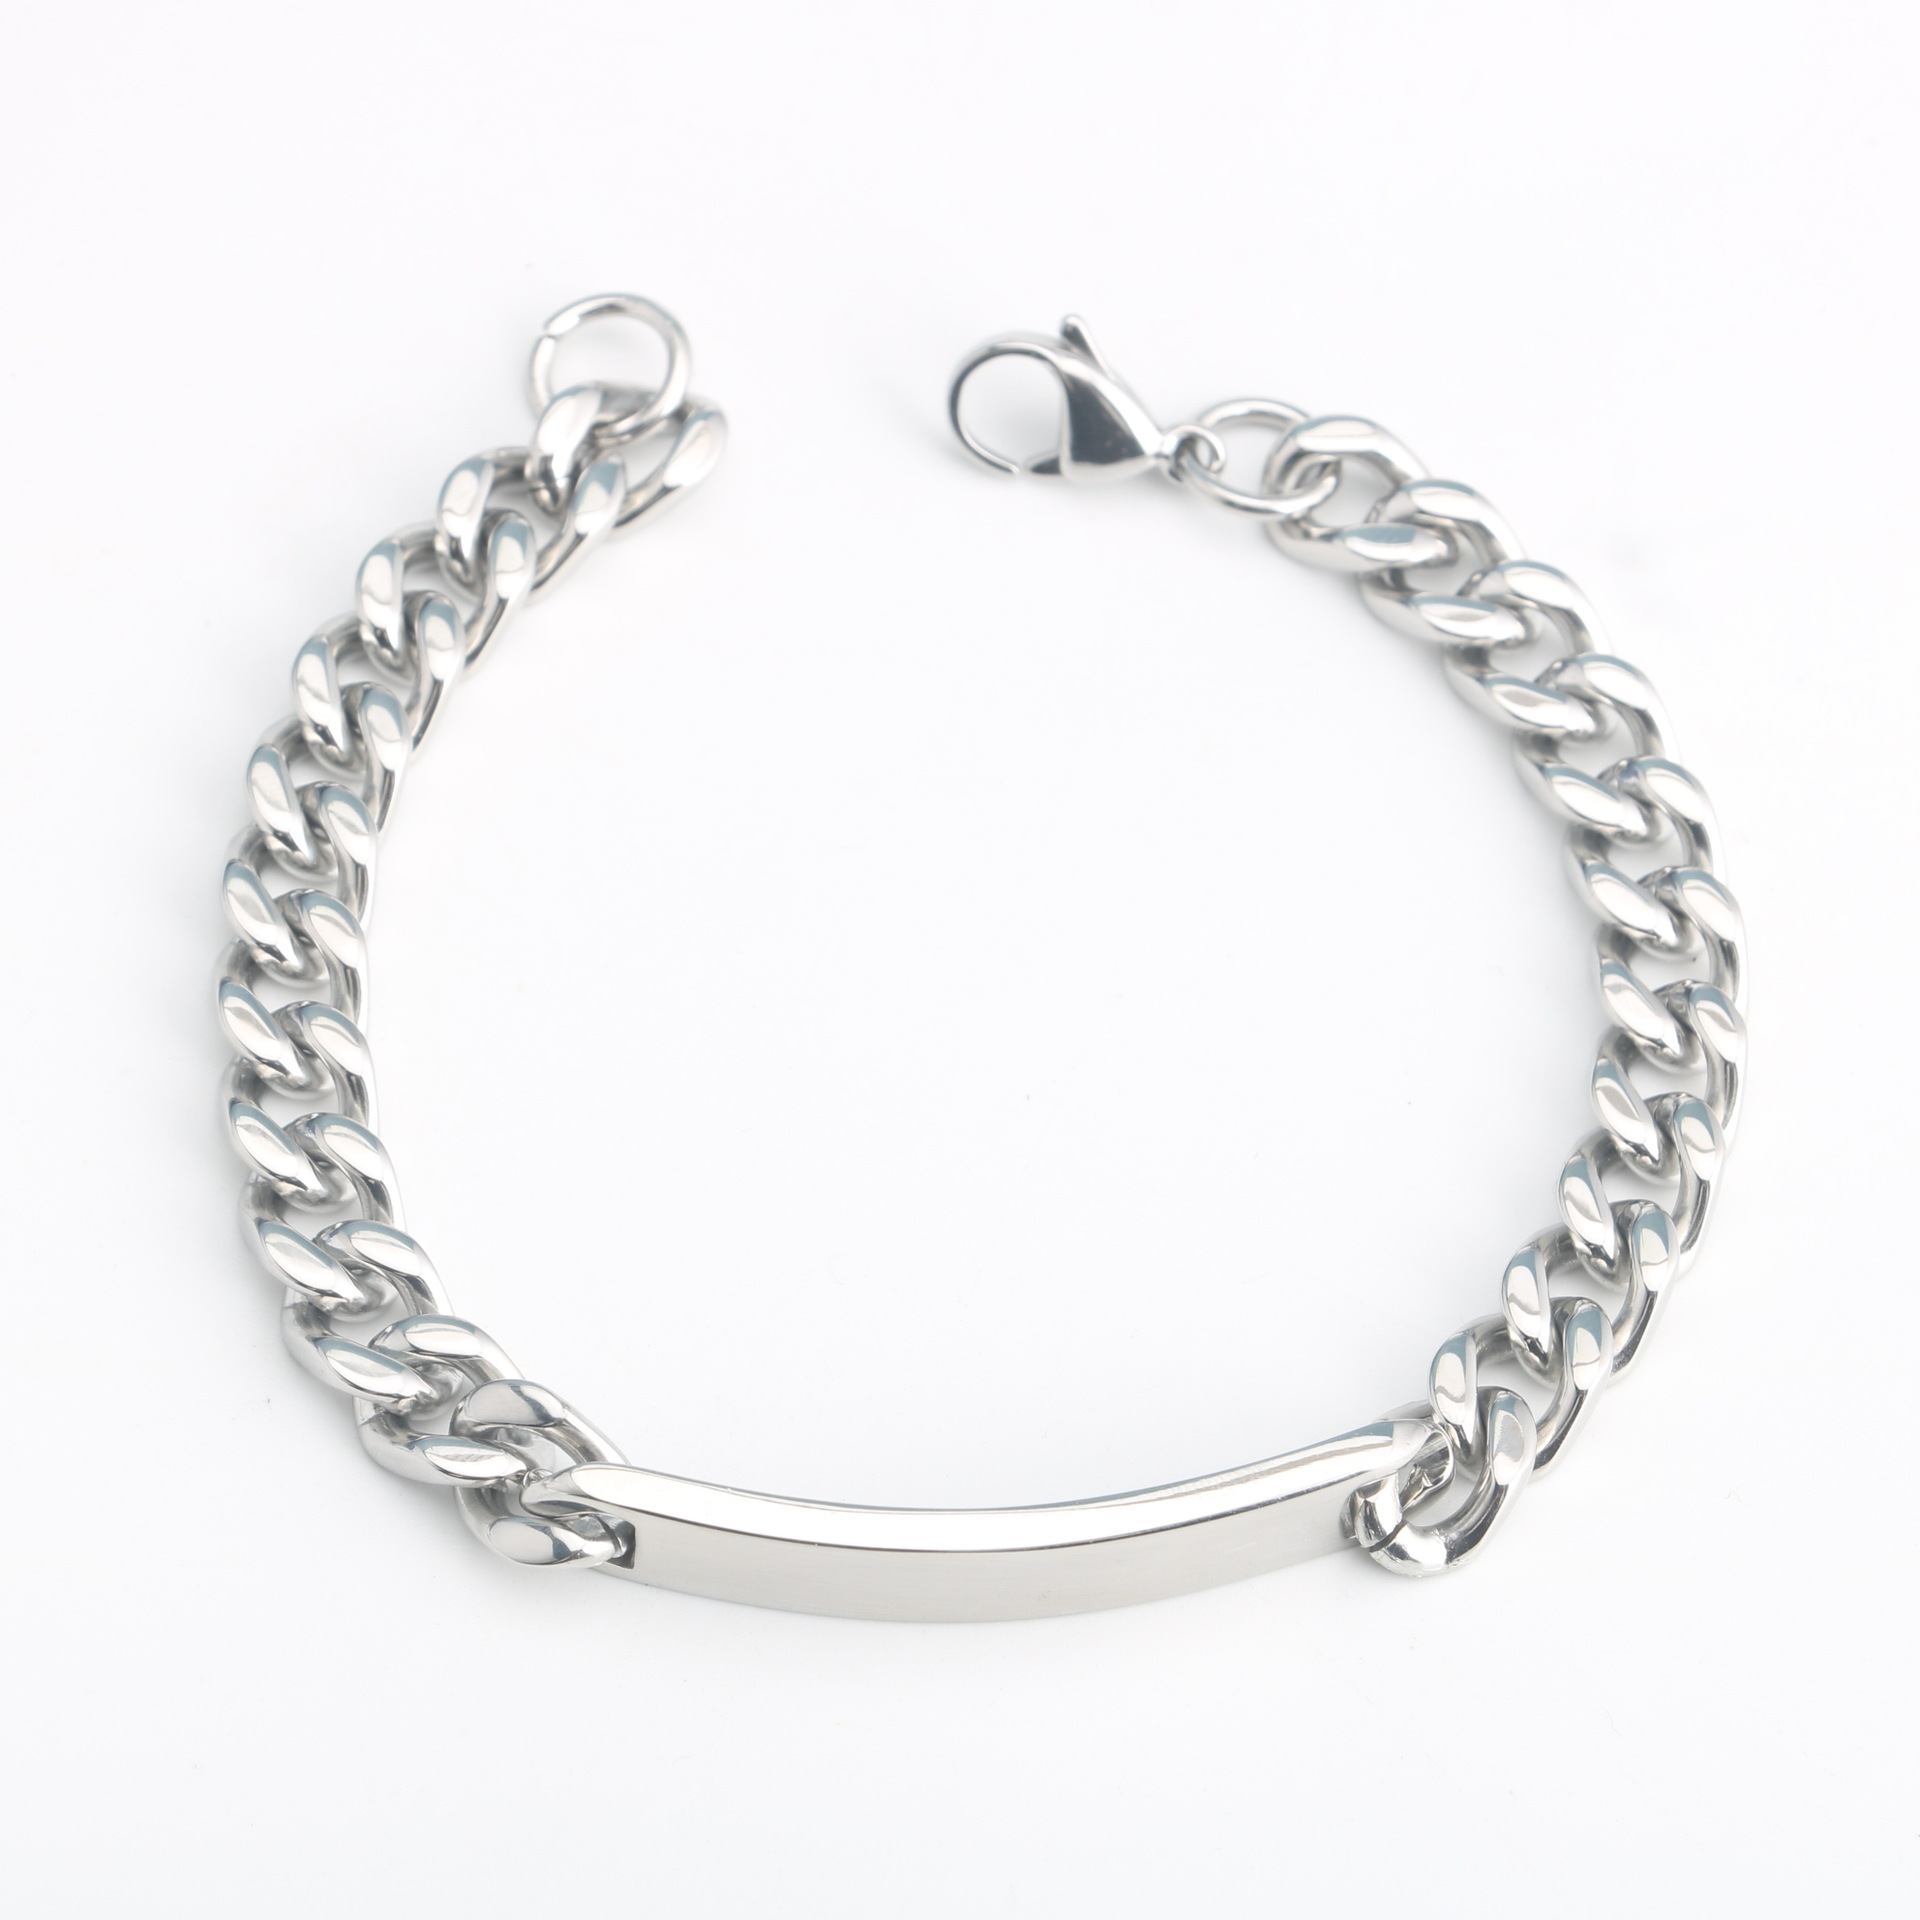 Mens Jewelry Stainless Steel Bar Link Chains Necklaces Stainless Steel Lobster Clasp Bracelets Bangles 18cm 22cm Party